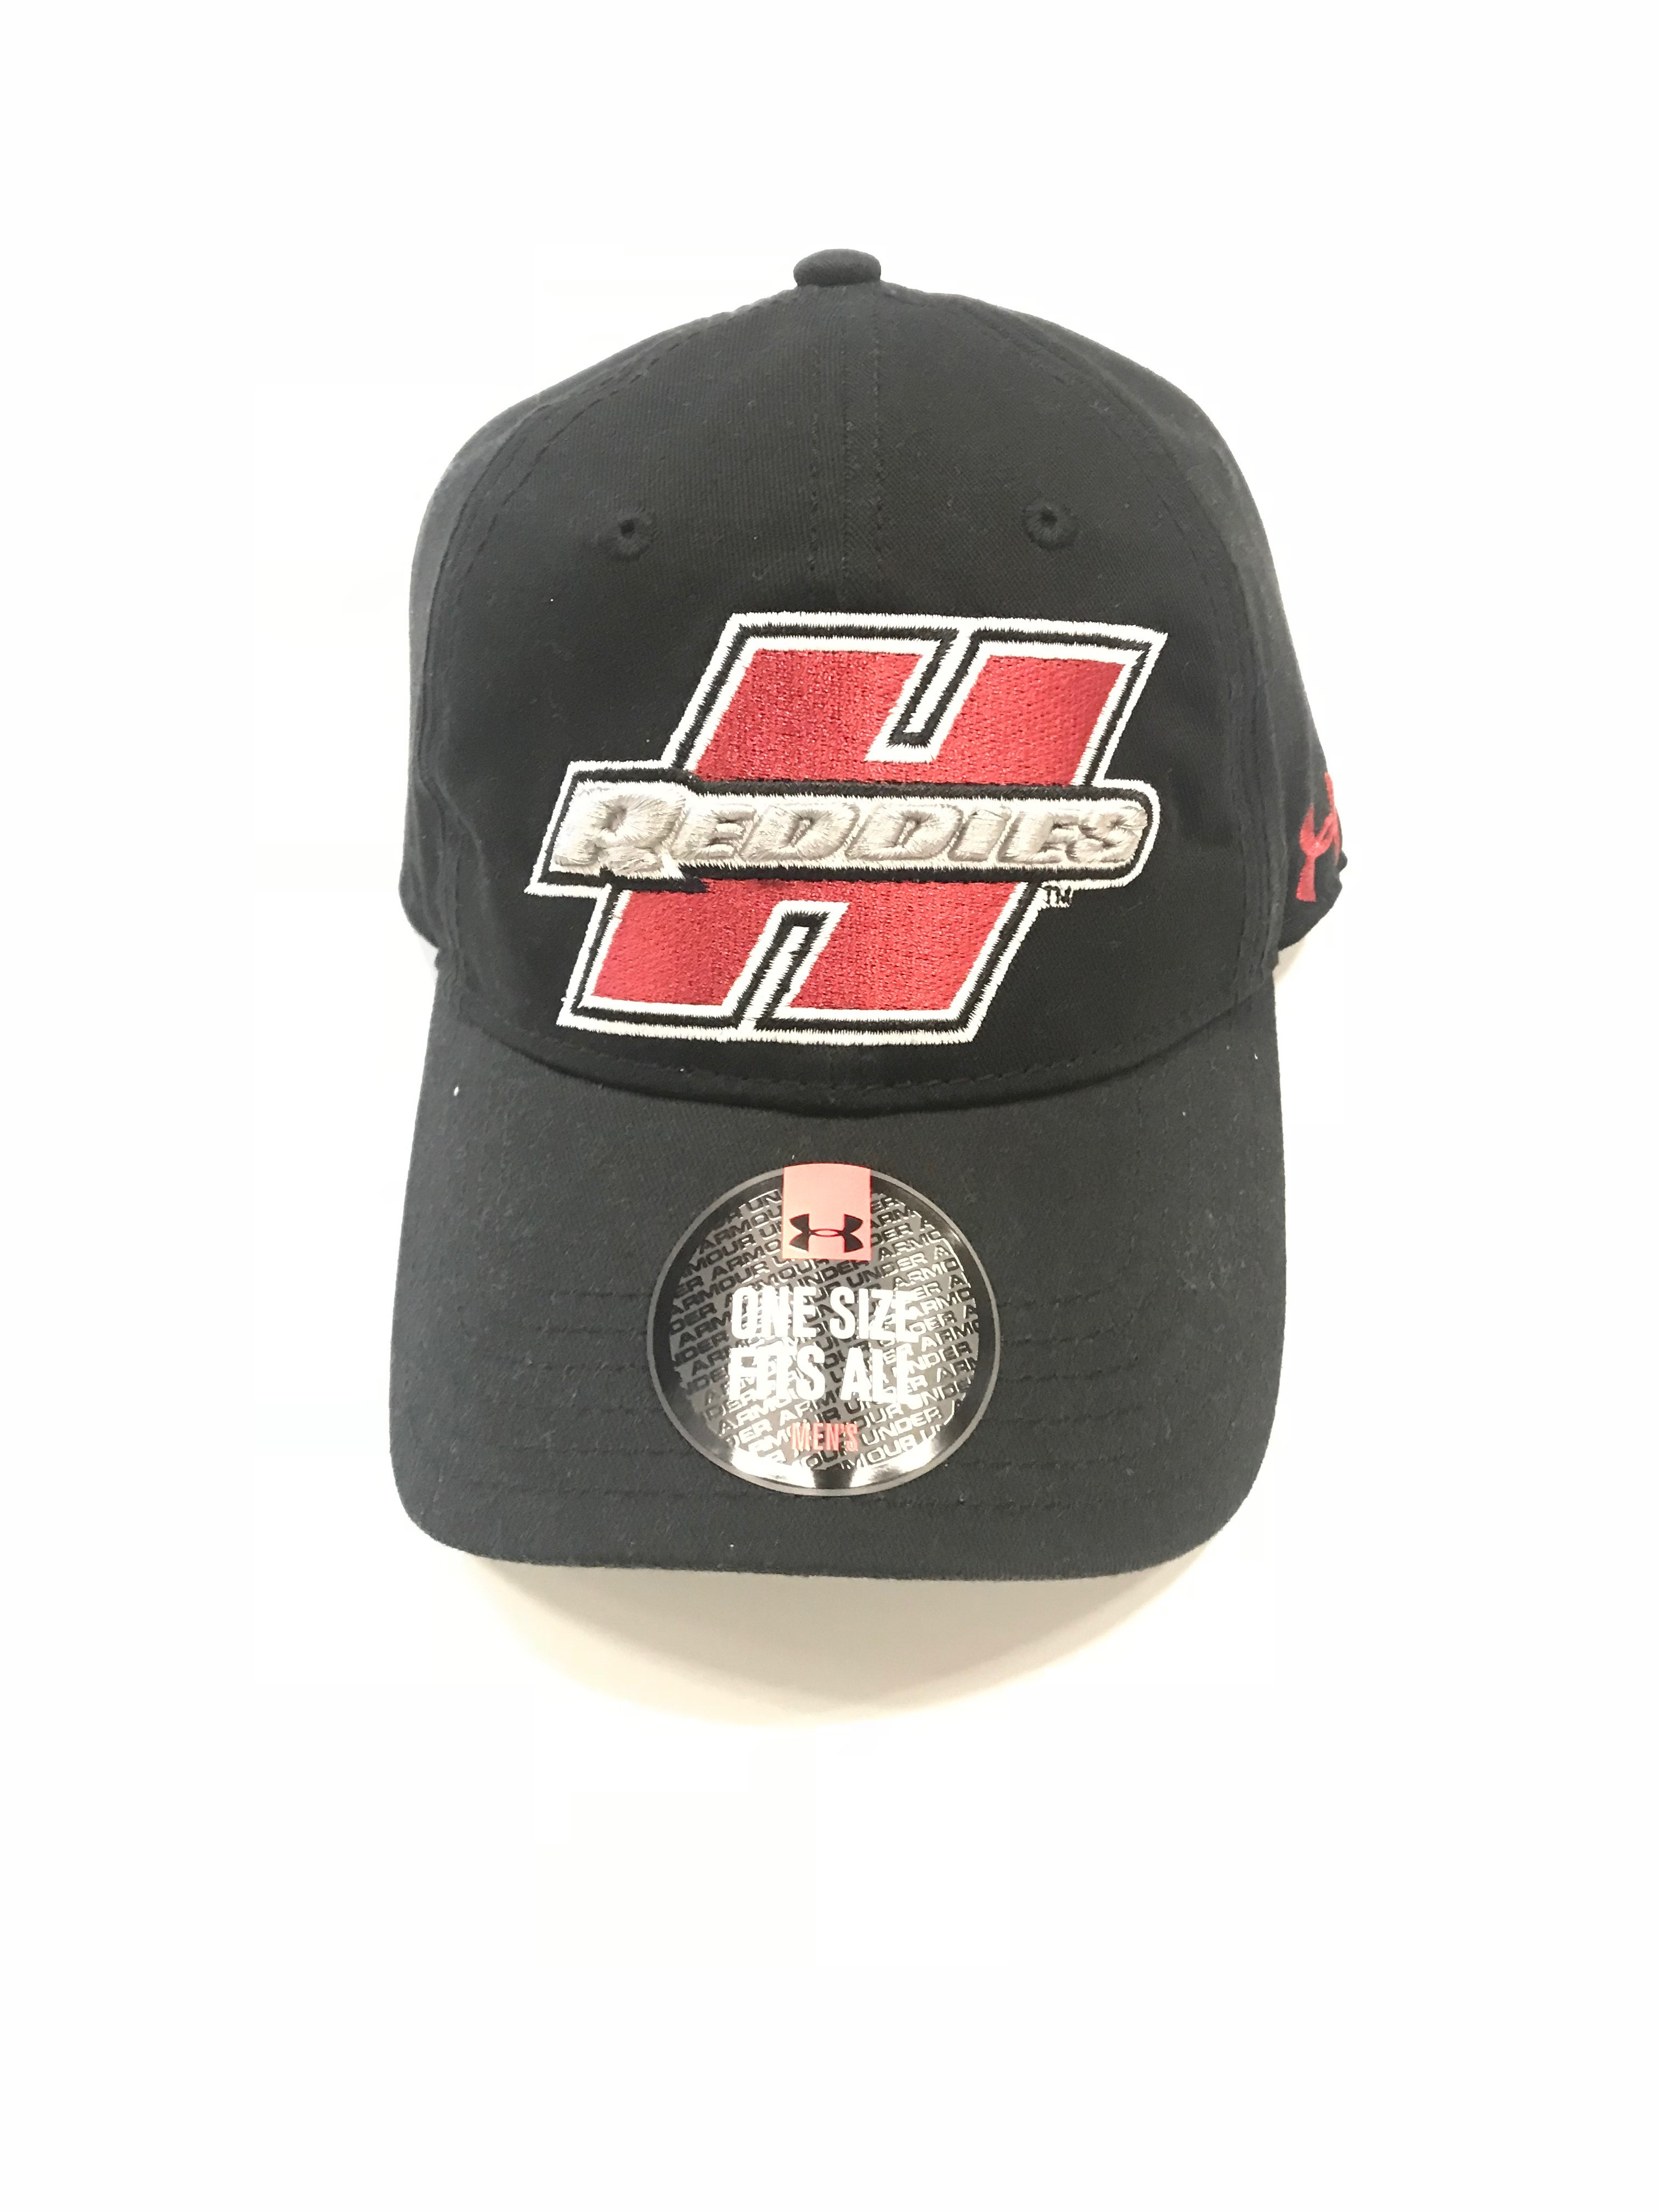 BLACK HREDDIES HAT